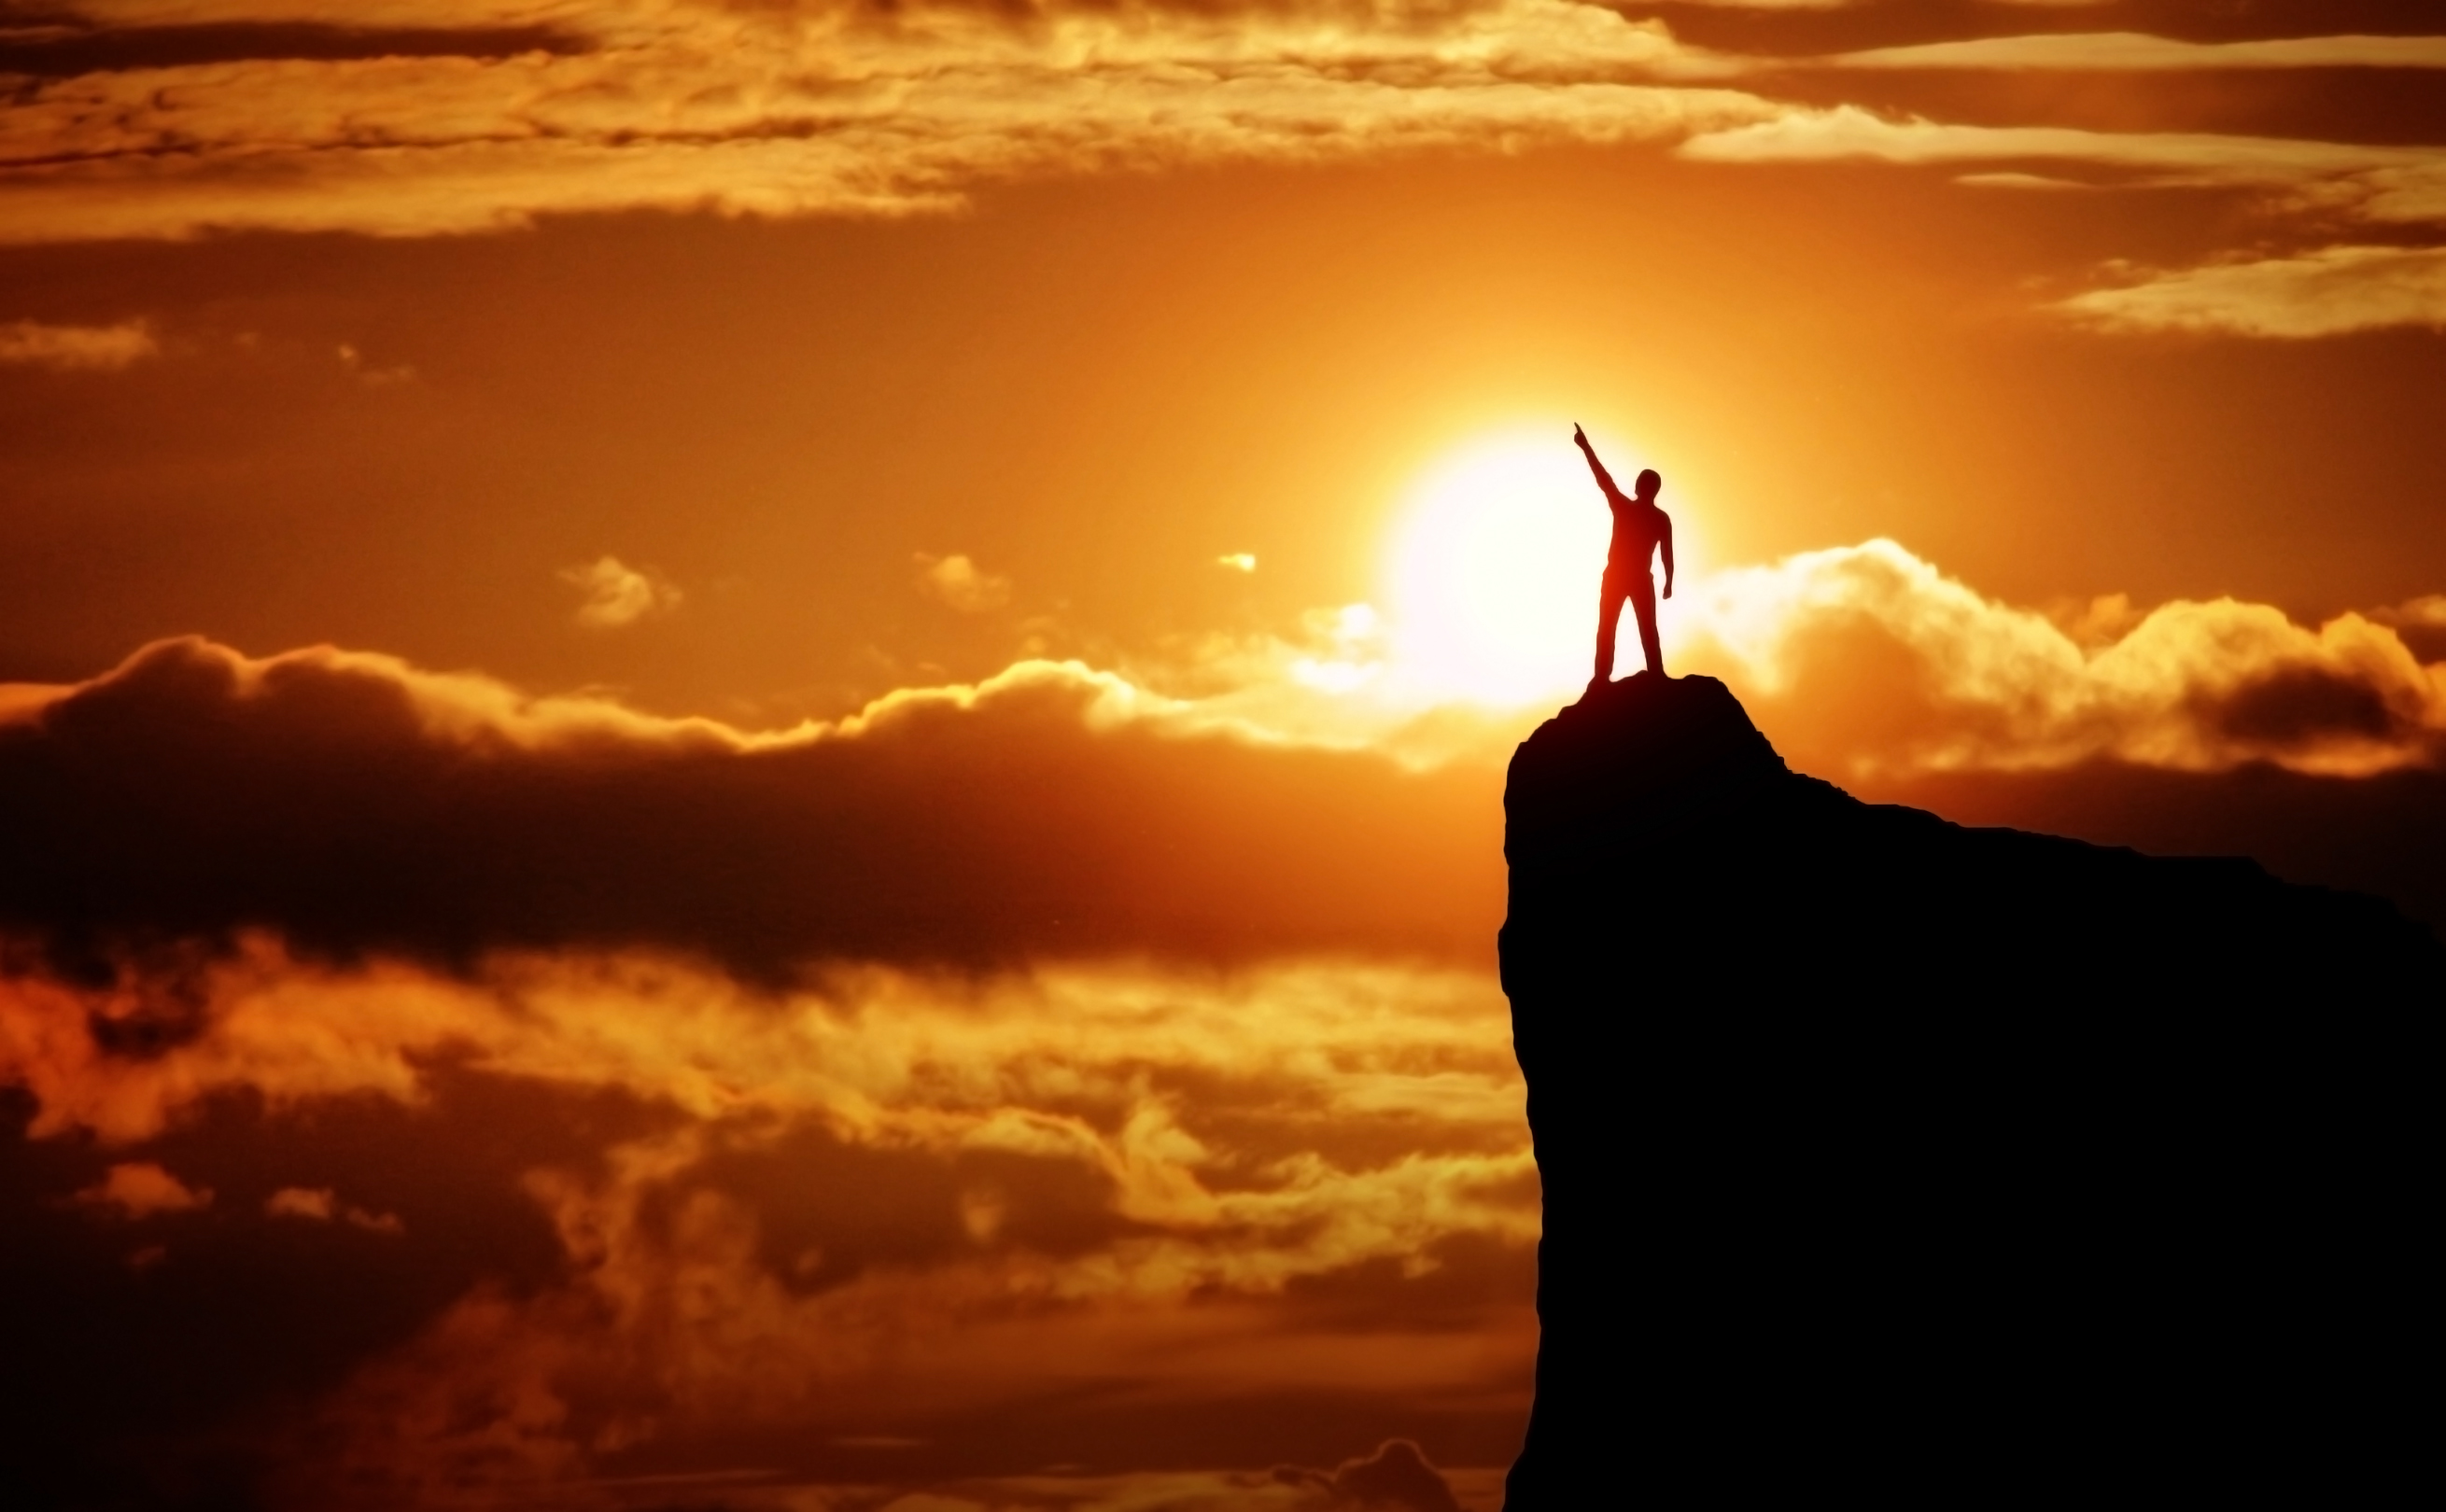 Man on the Top of the Mountain at Sunrise, Achievement, Sky, Rucksack, Rock, HQ Photo